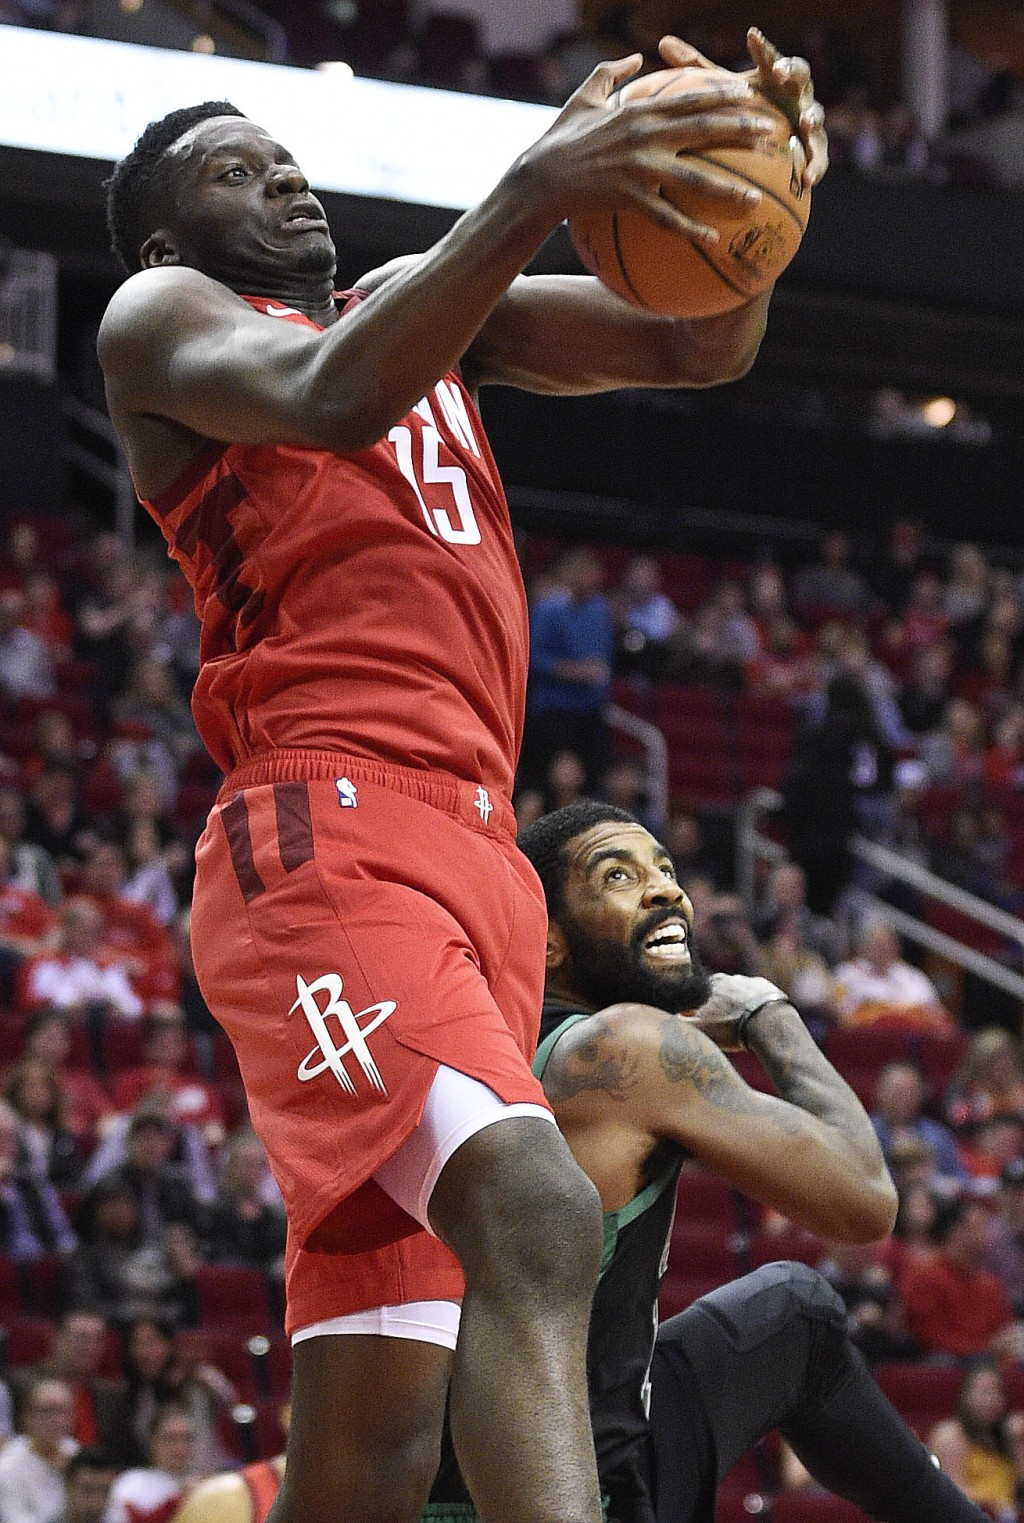 Houston Rockets center Clint Capela, left, grabs a rebound above Boston Celtics guard Kyrie Irving during the first half of an NBA basketball game, Th...